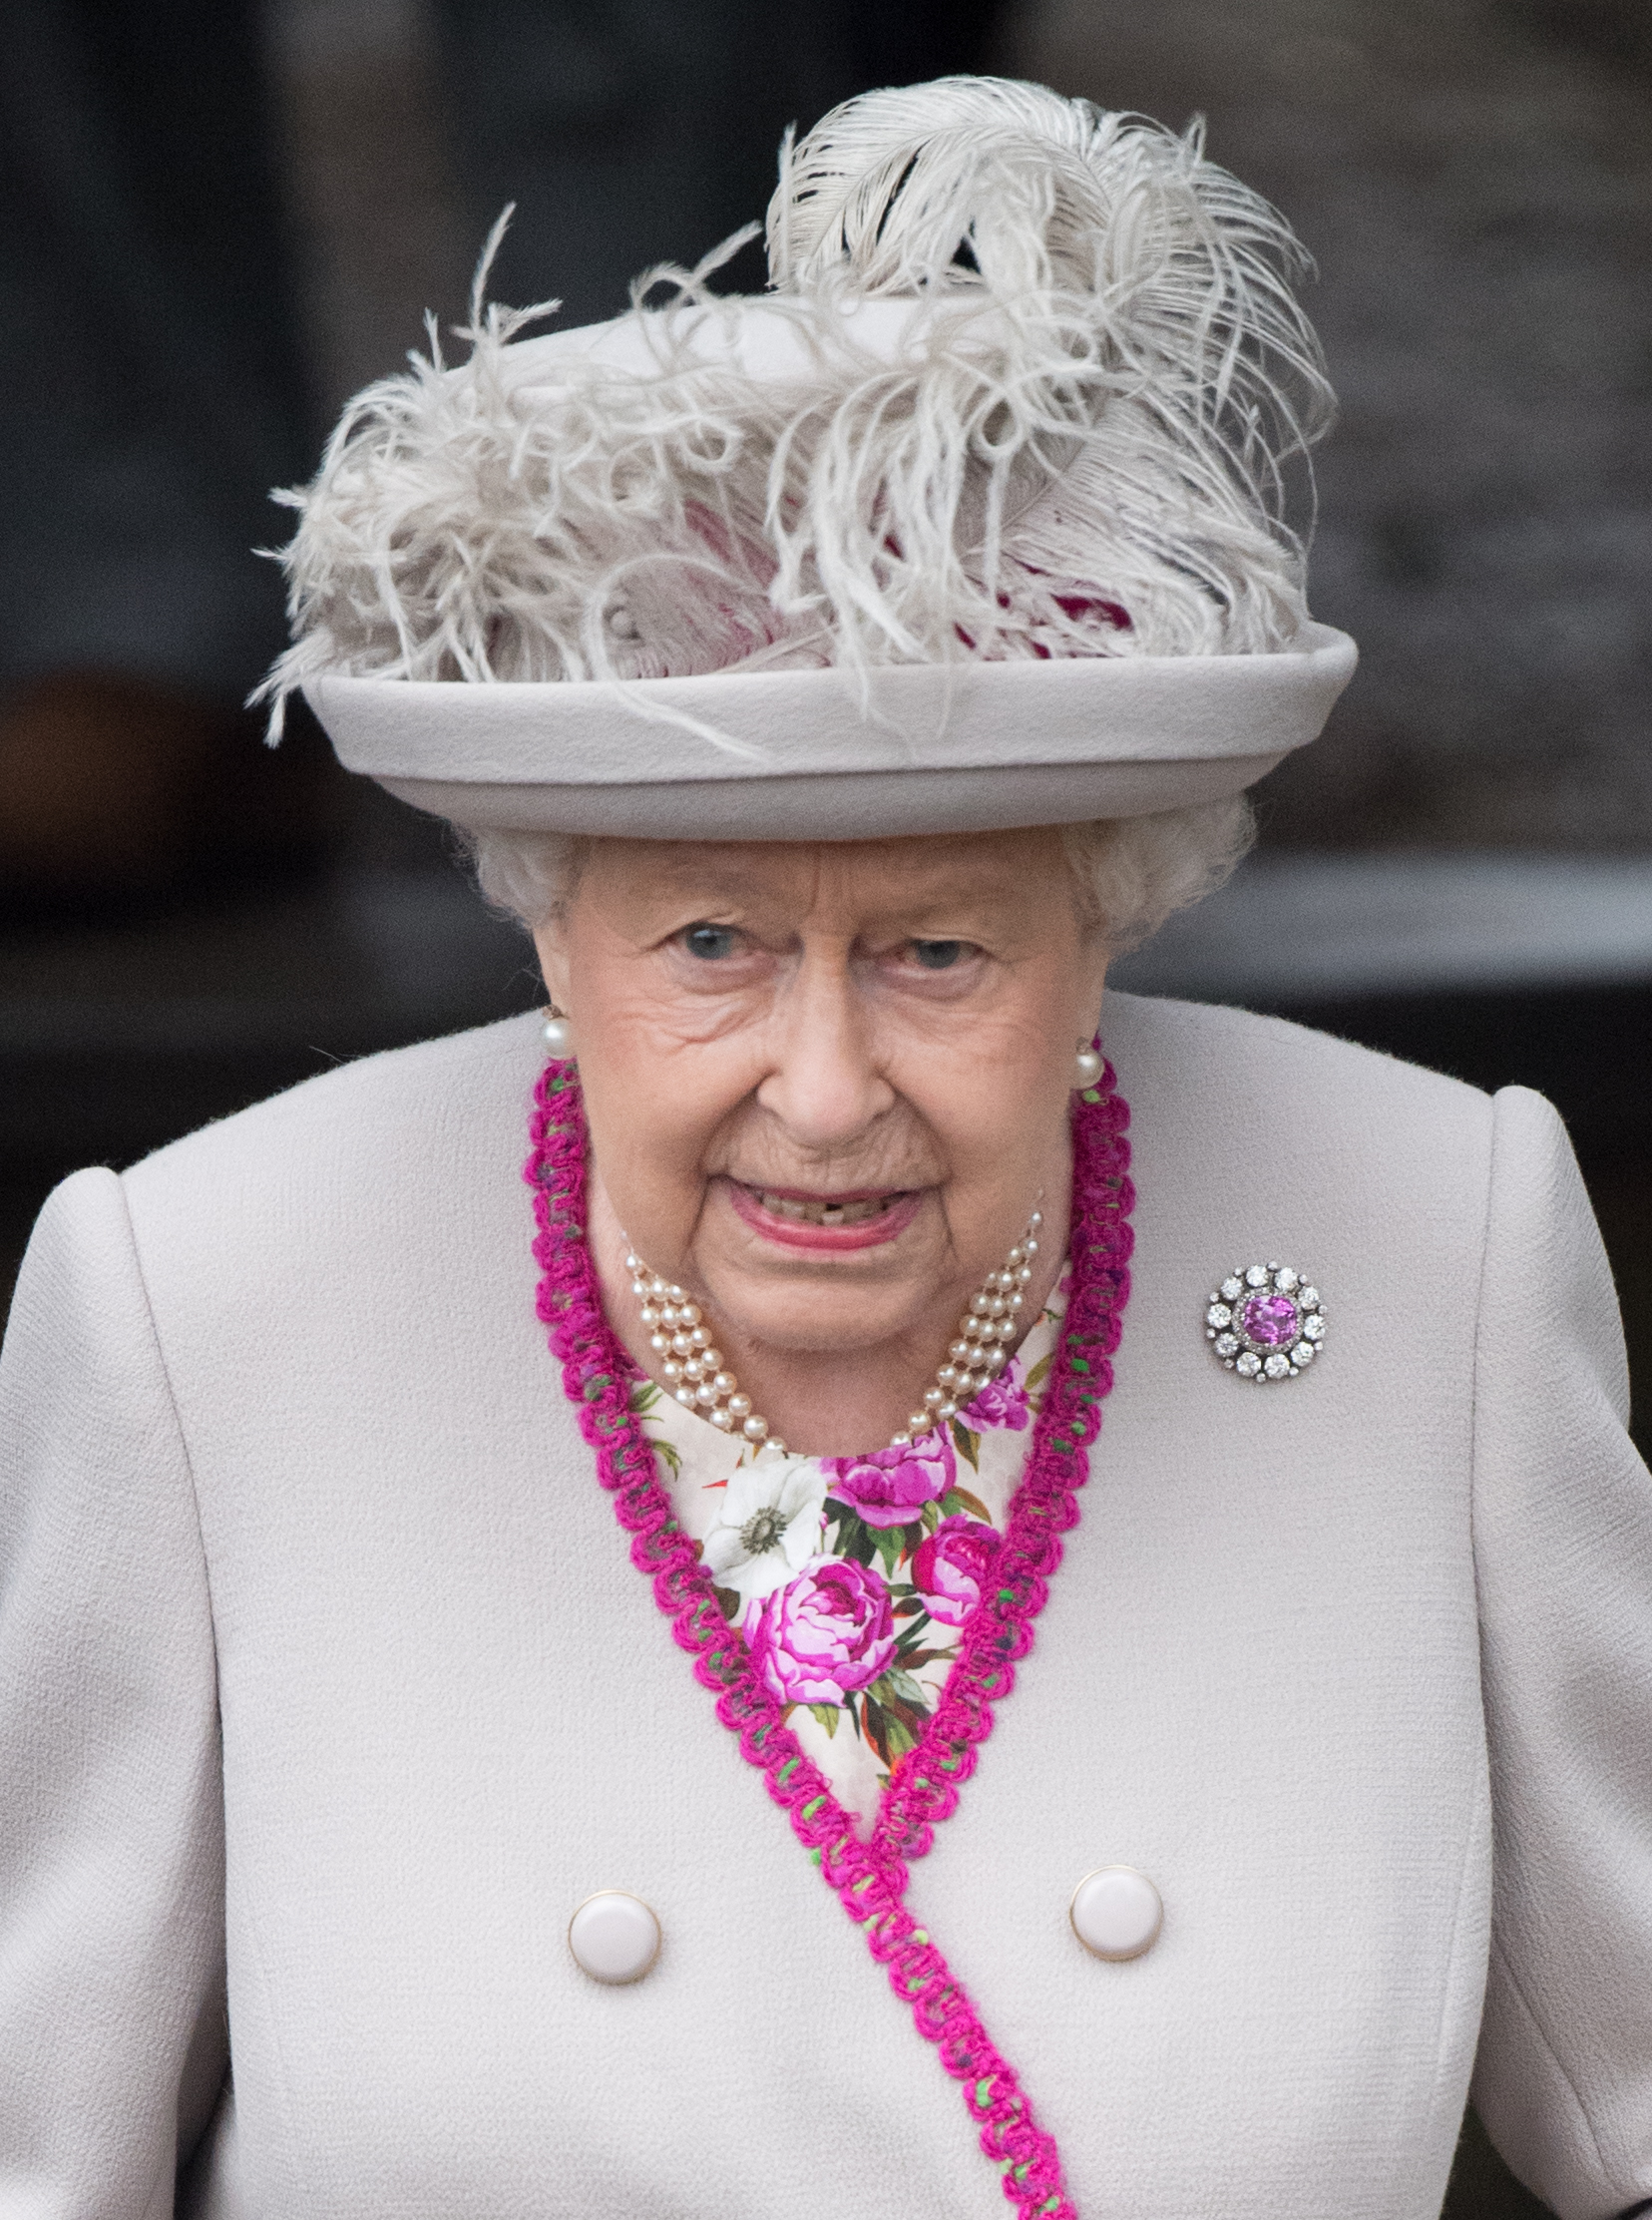 KING'S LYNN, ENGLAND - DECEMBER 25: Queen Elizabeth II attends Christmas Day Church service at Church of St Mary Magdalene on the Sandringham estate on December 25, 2018 in King's Lynn, England. (Photo by Samir Hussein/WireImage)